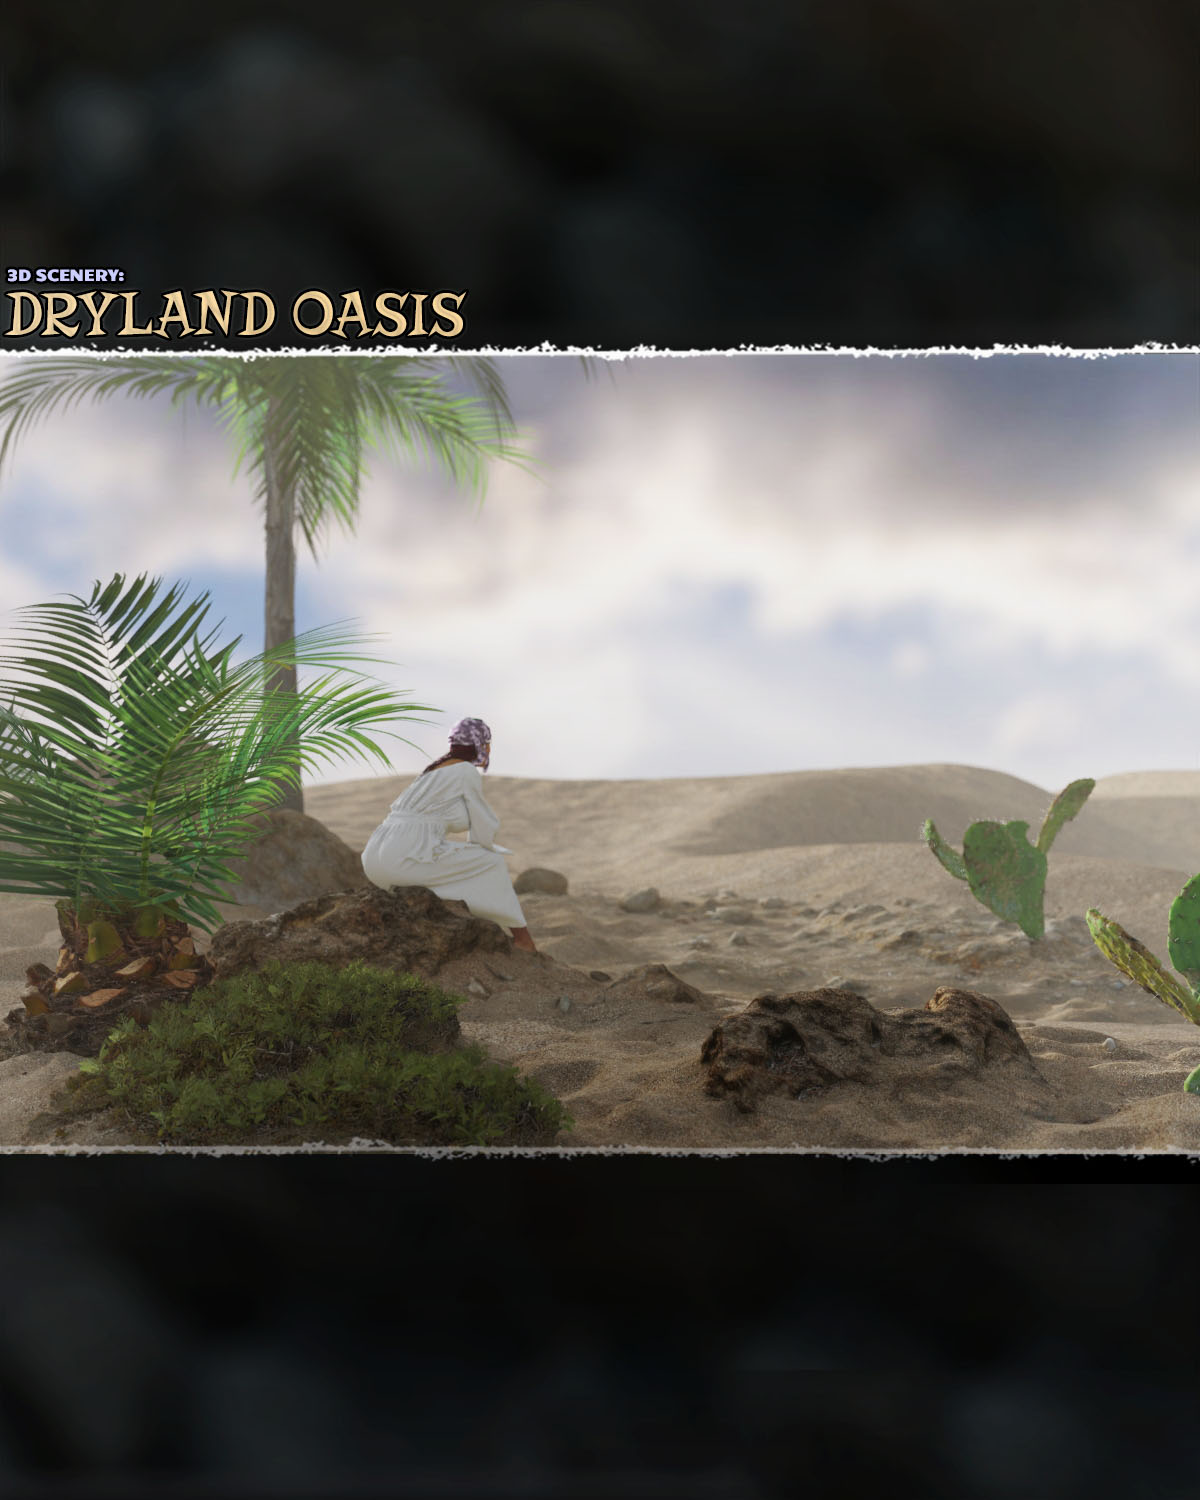 3D Scenery: Dryland Oasis - Extended License